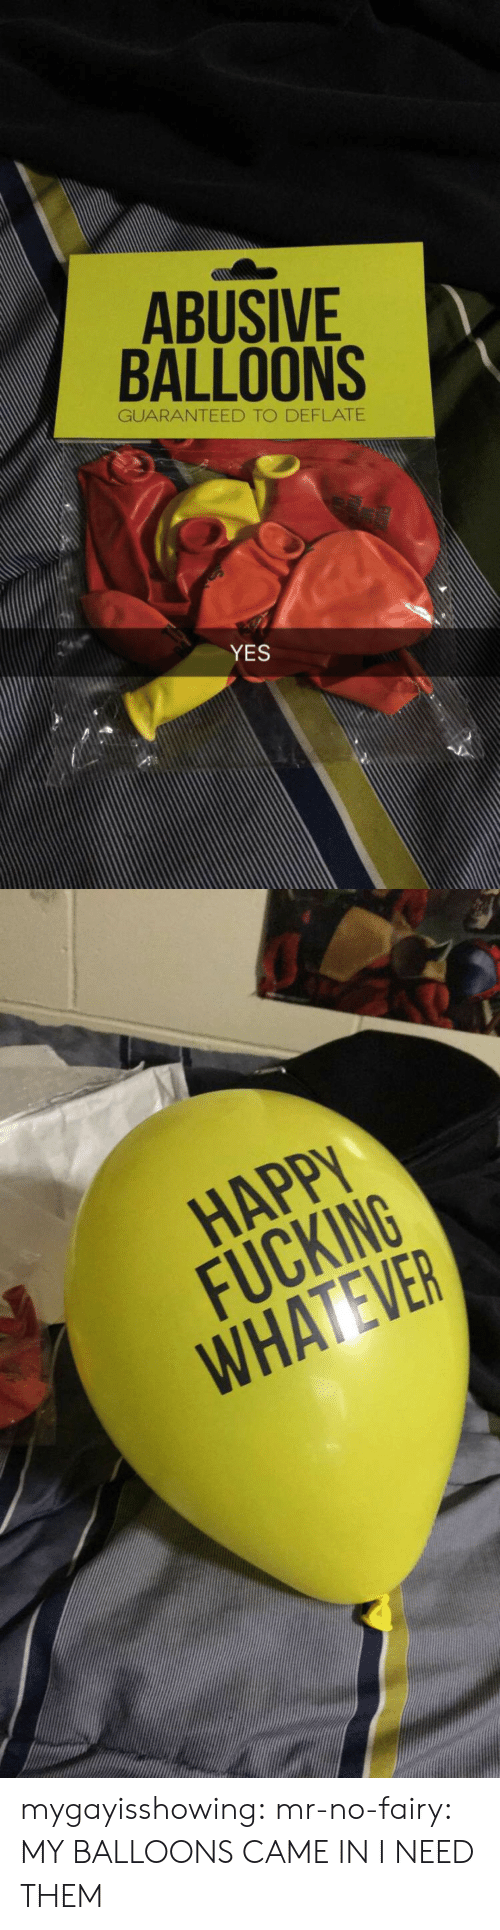 Fucking, Target, and Tumblr: ABUSIVE  BALLOONS  GUARANTEED TO DEFLATE  YES   HAPP  FUCKING  WHATEVER mygayisshowing:  mr-no-fairy:  MY BALLOONS CAME IN  I NEED THEM